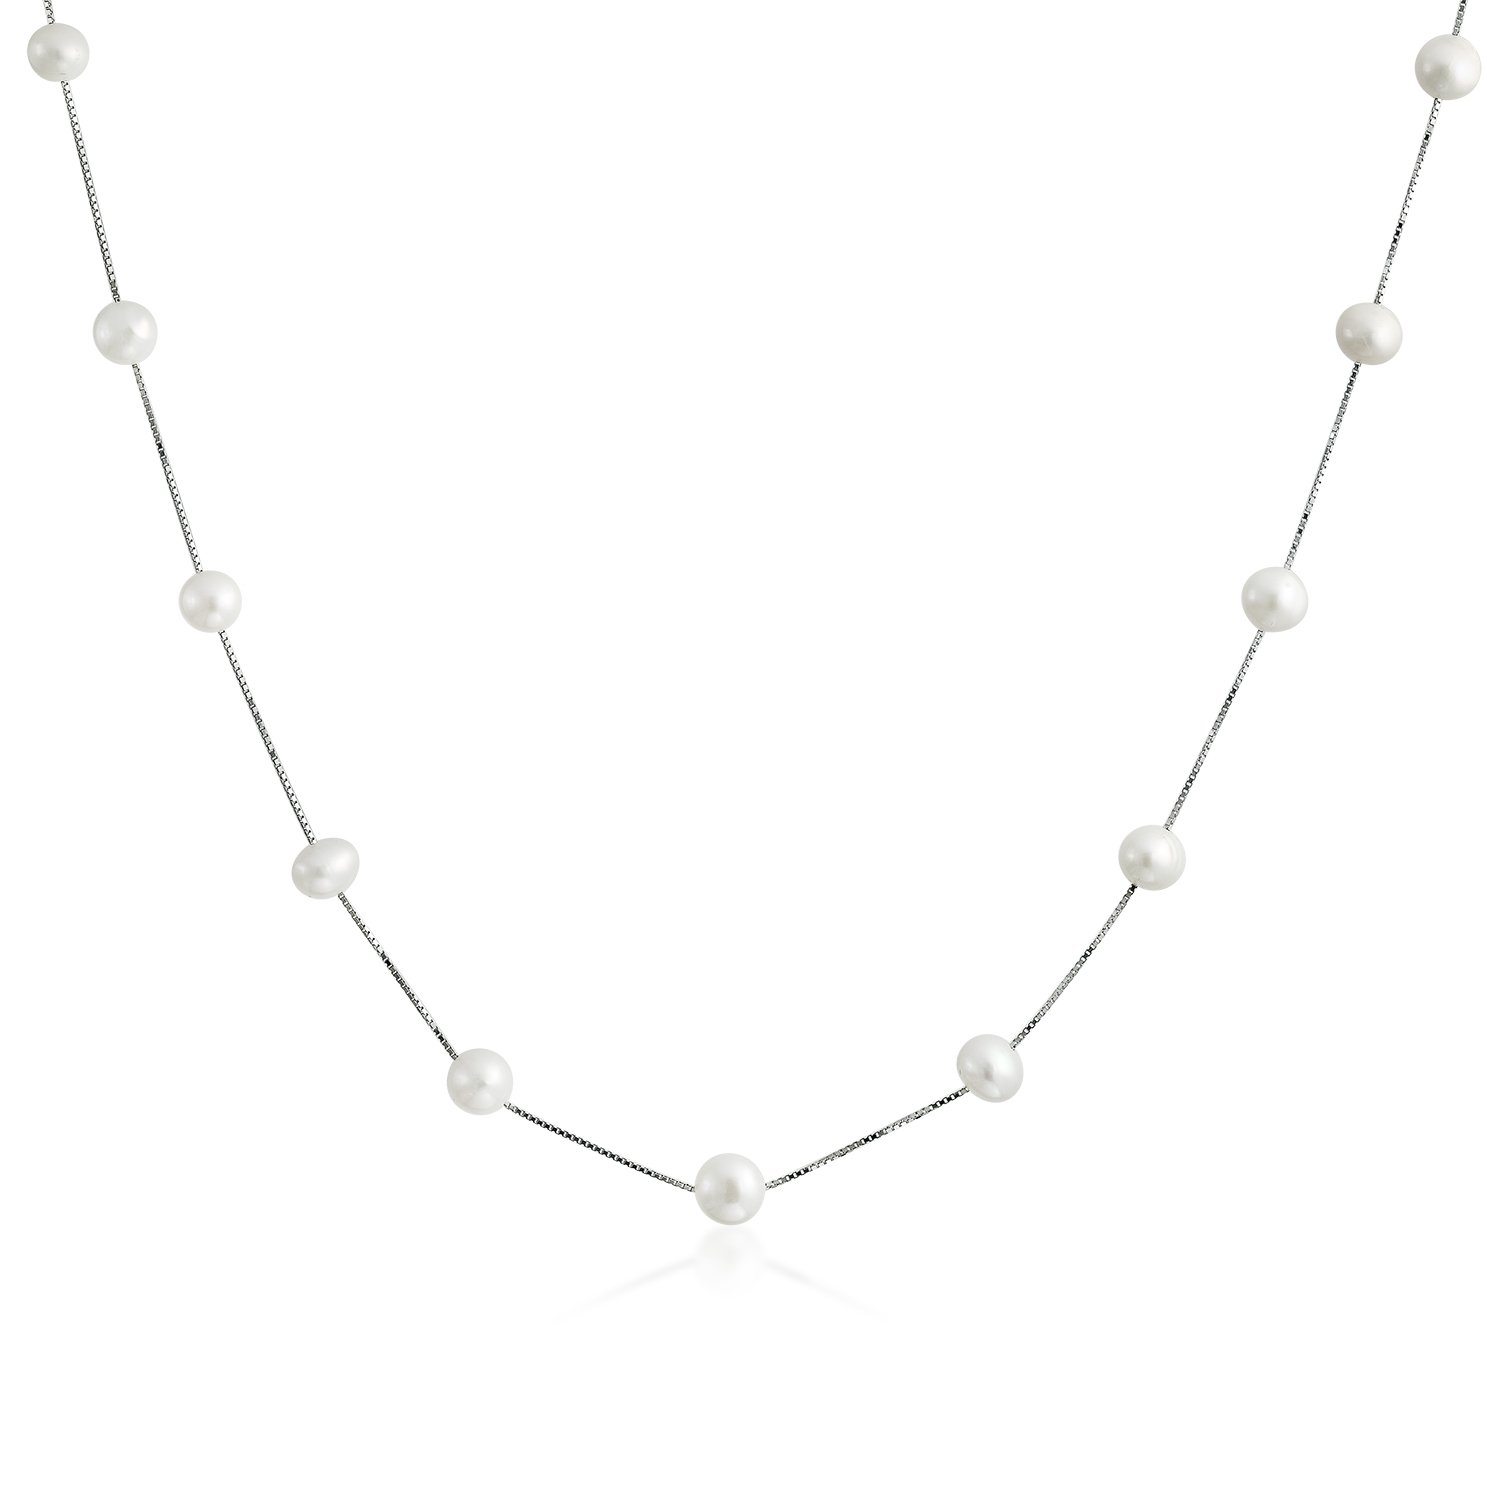 Bridal Freshwater Cultured Pearl White Tin Cup Sterling Silver Necklace 16 Inches